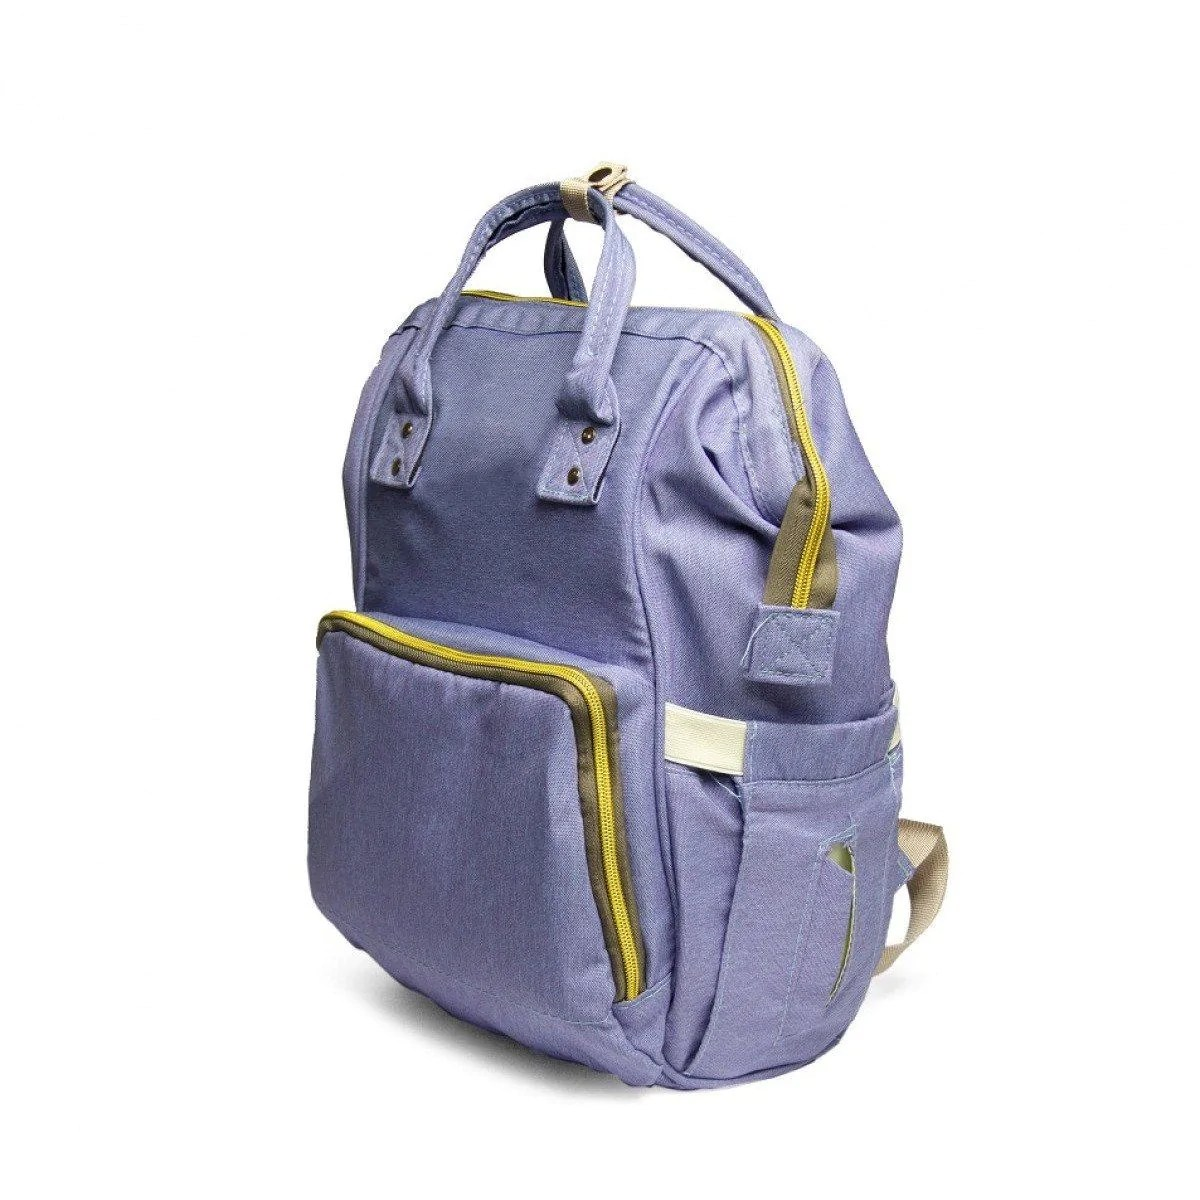 Baby Bags Durban Nappy Bag Backpack